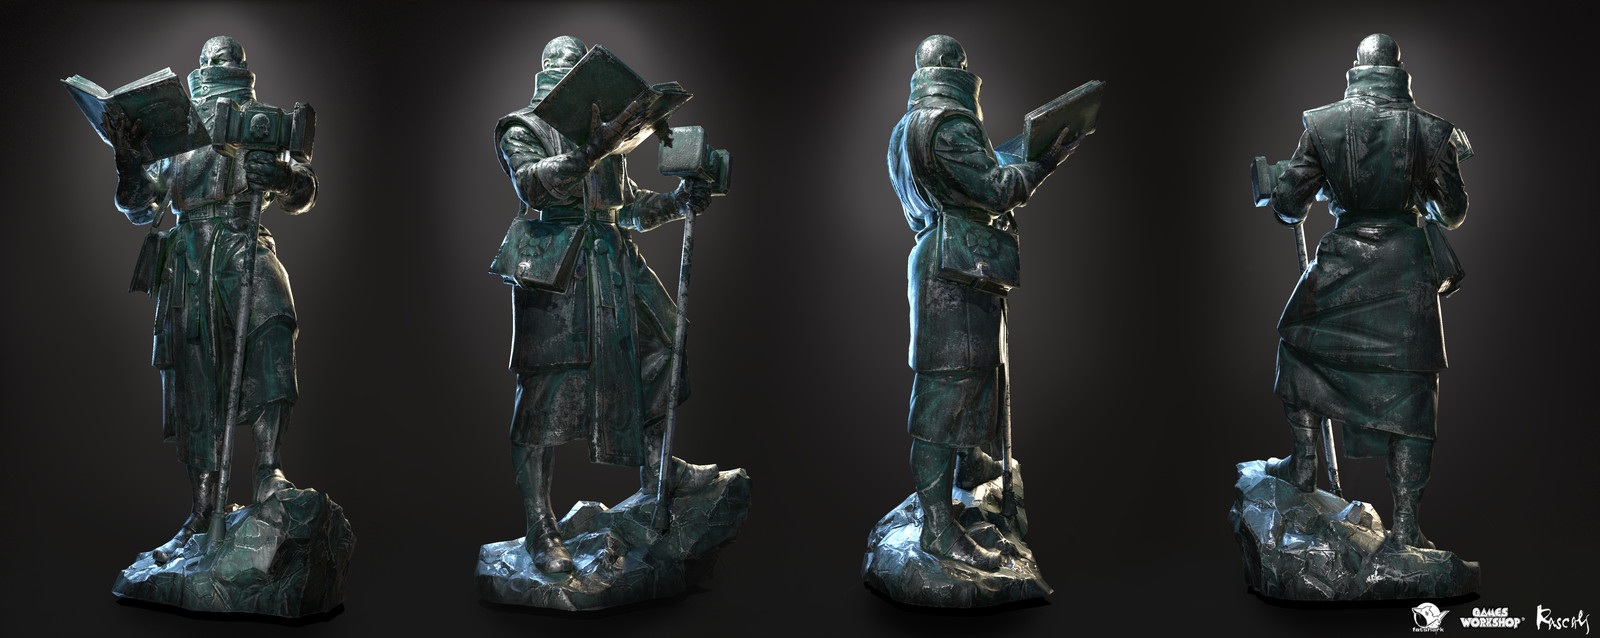 The statues have PBR textures and 10K polys in average.